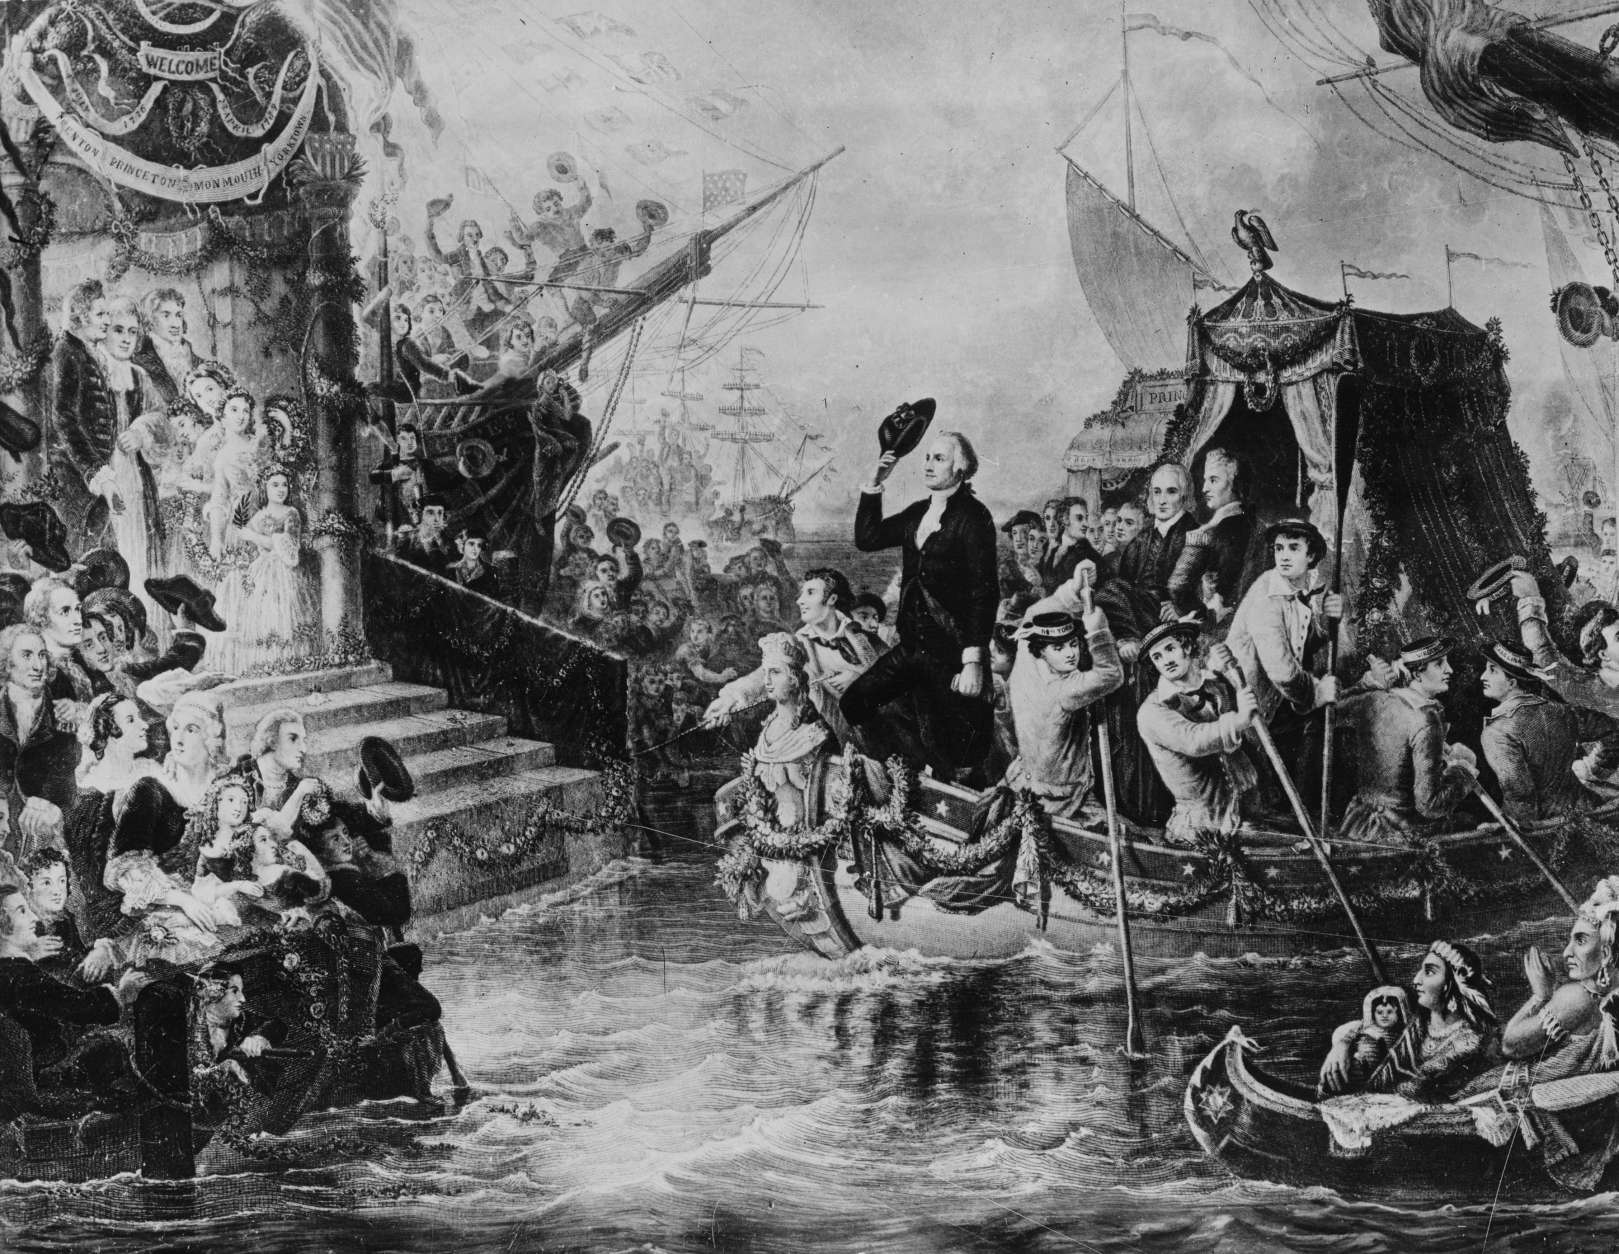 This drawing depicts George Washington arriving in New York by barge on his inauguration day on April 30, 1789.  The nation's first president took his oath of ofiice on the balcony of Federal Hall on Wall Street.  (AP Photo)